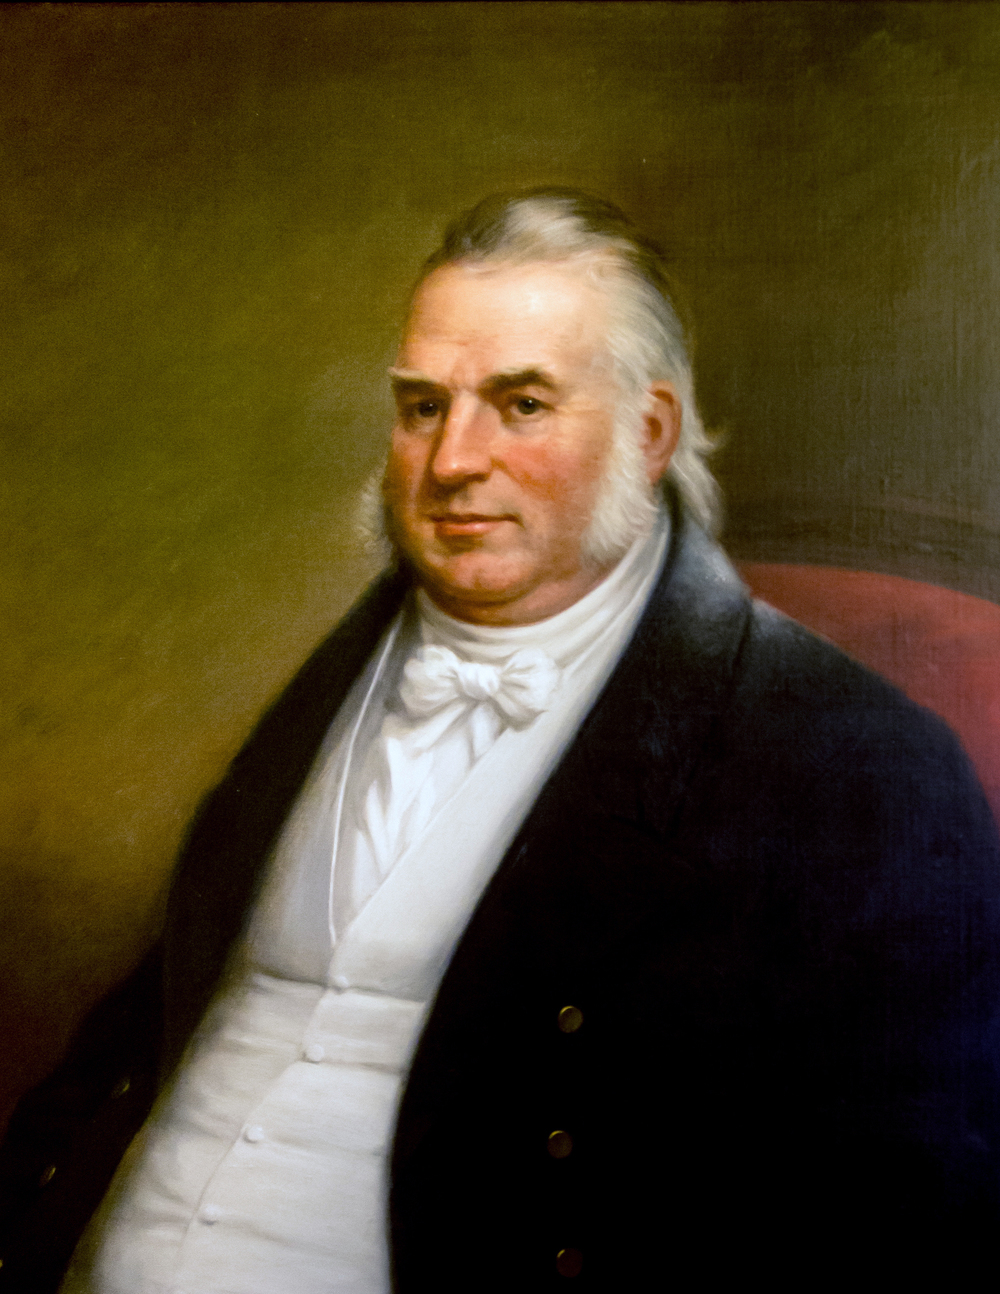 Official portrait by James Sullivan Lincoln